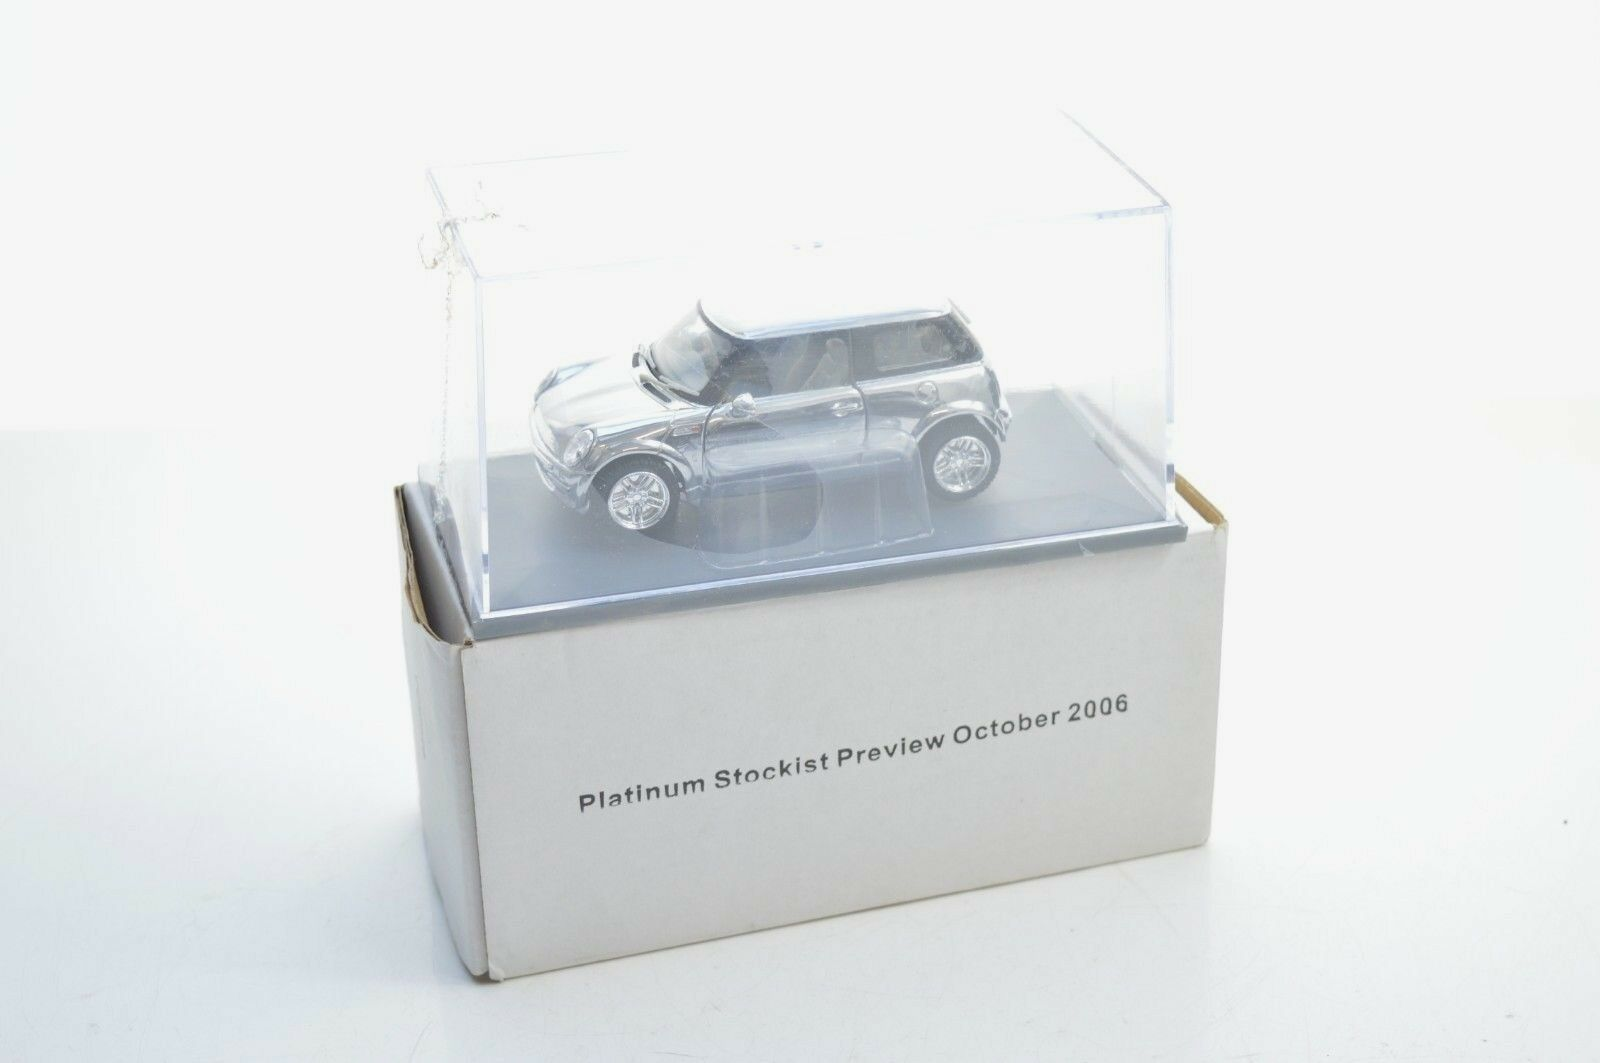 CORGI CC 862529 CHROME PLATED BMW MINI